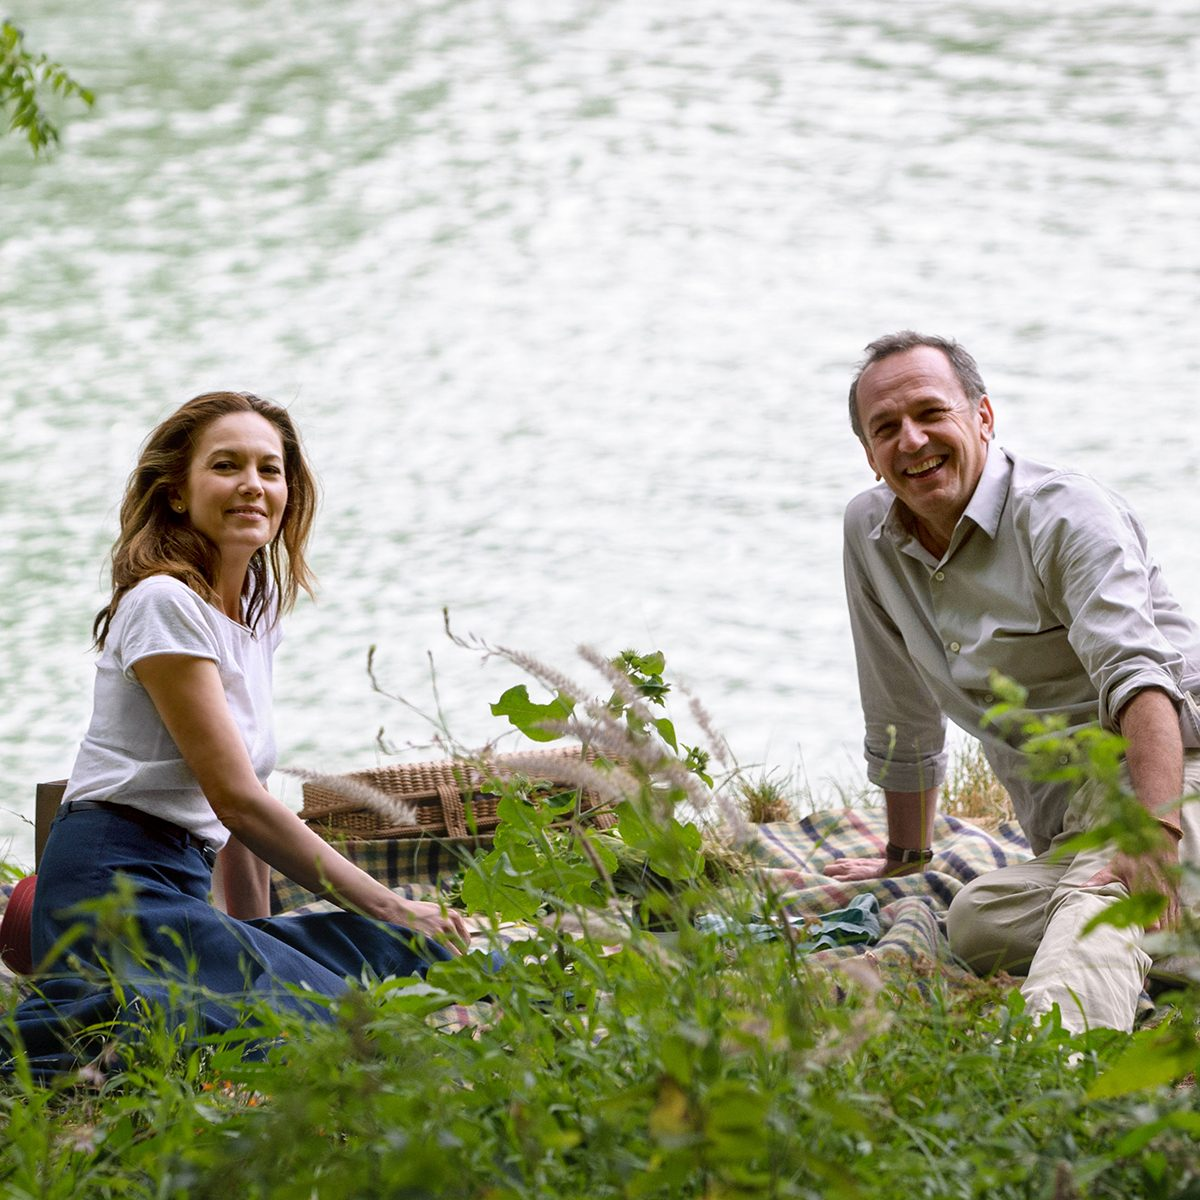 """No Merchandising. Editorial Use Only. No Book Cover Usage Mandatory Credit: Photo by A+E/Kobal/REX/Shutterstock (8819605a) Diane Lane, Arnaud Viard """"Paris Can Wait"""" Film - 2016"""